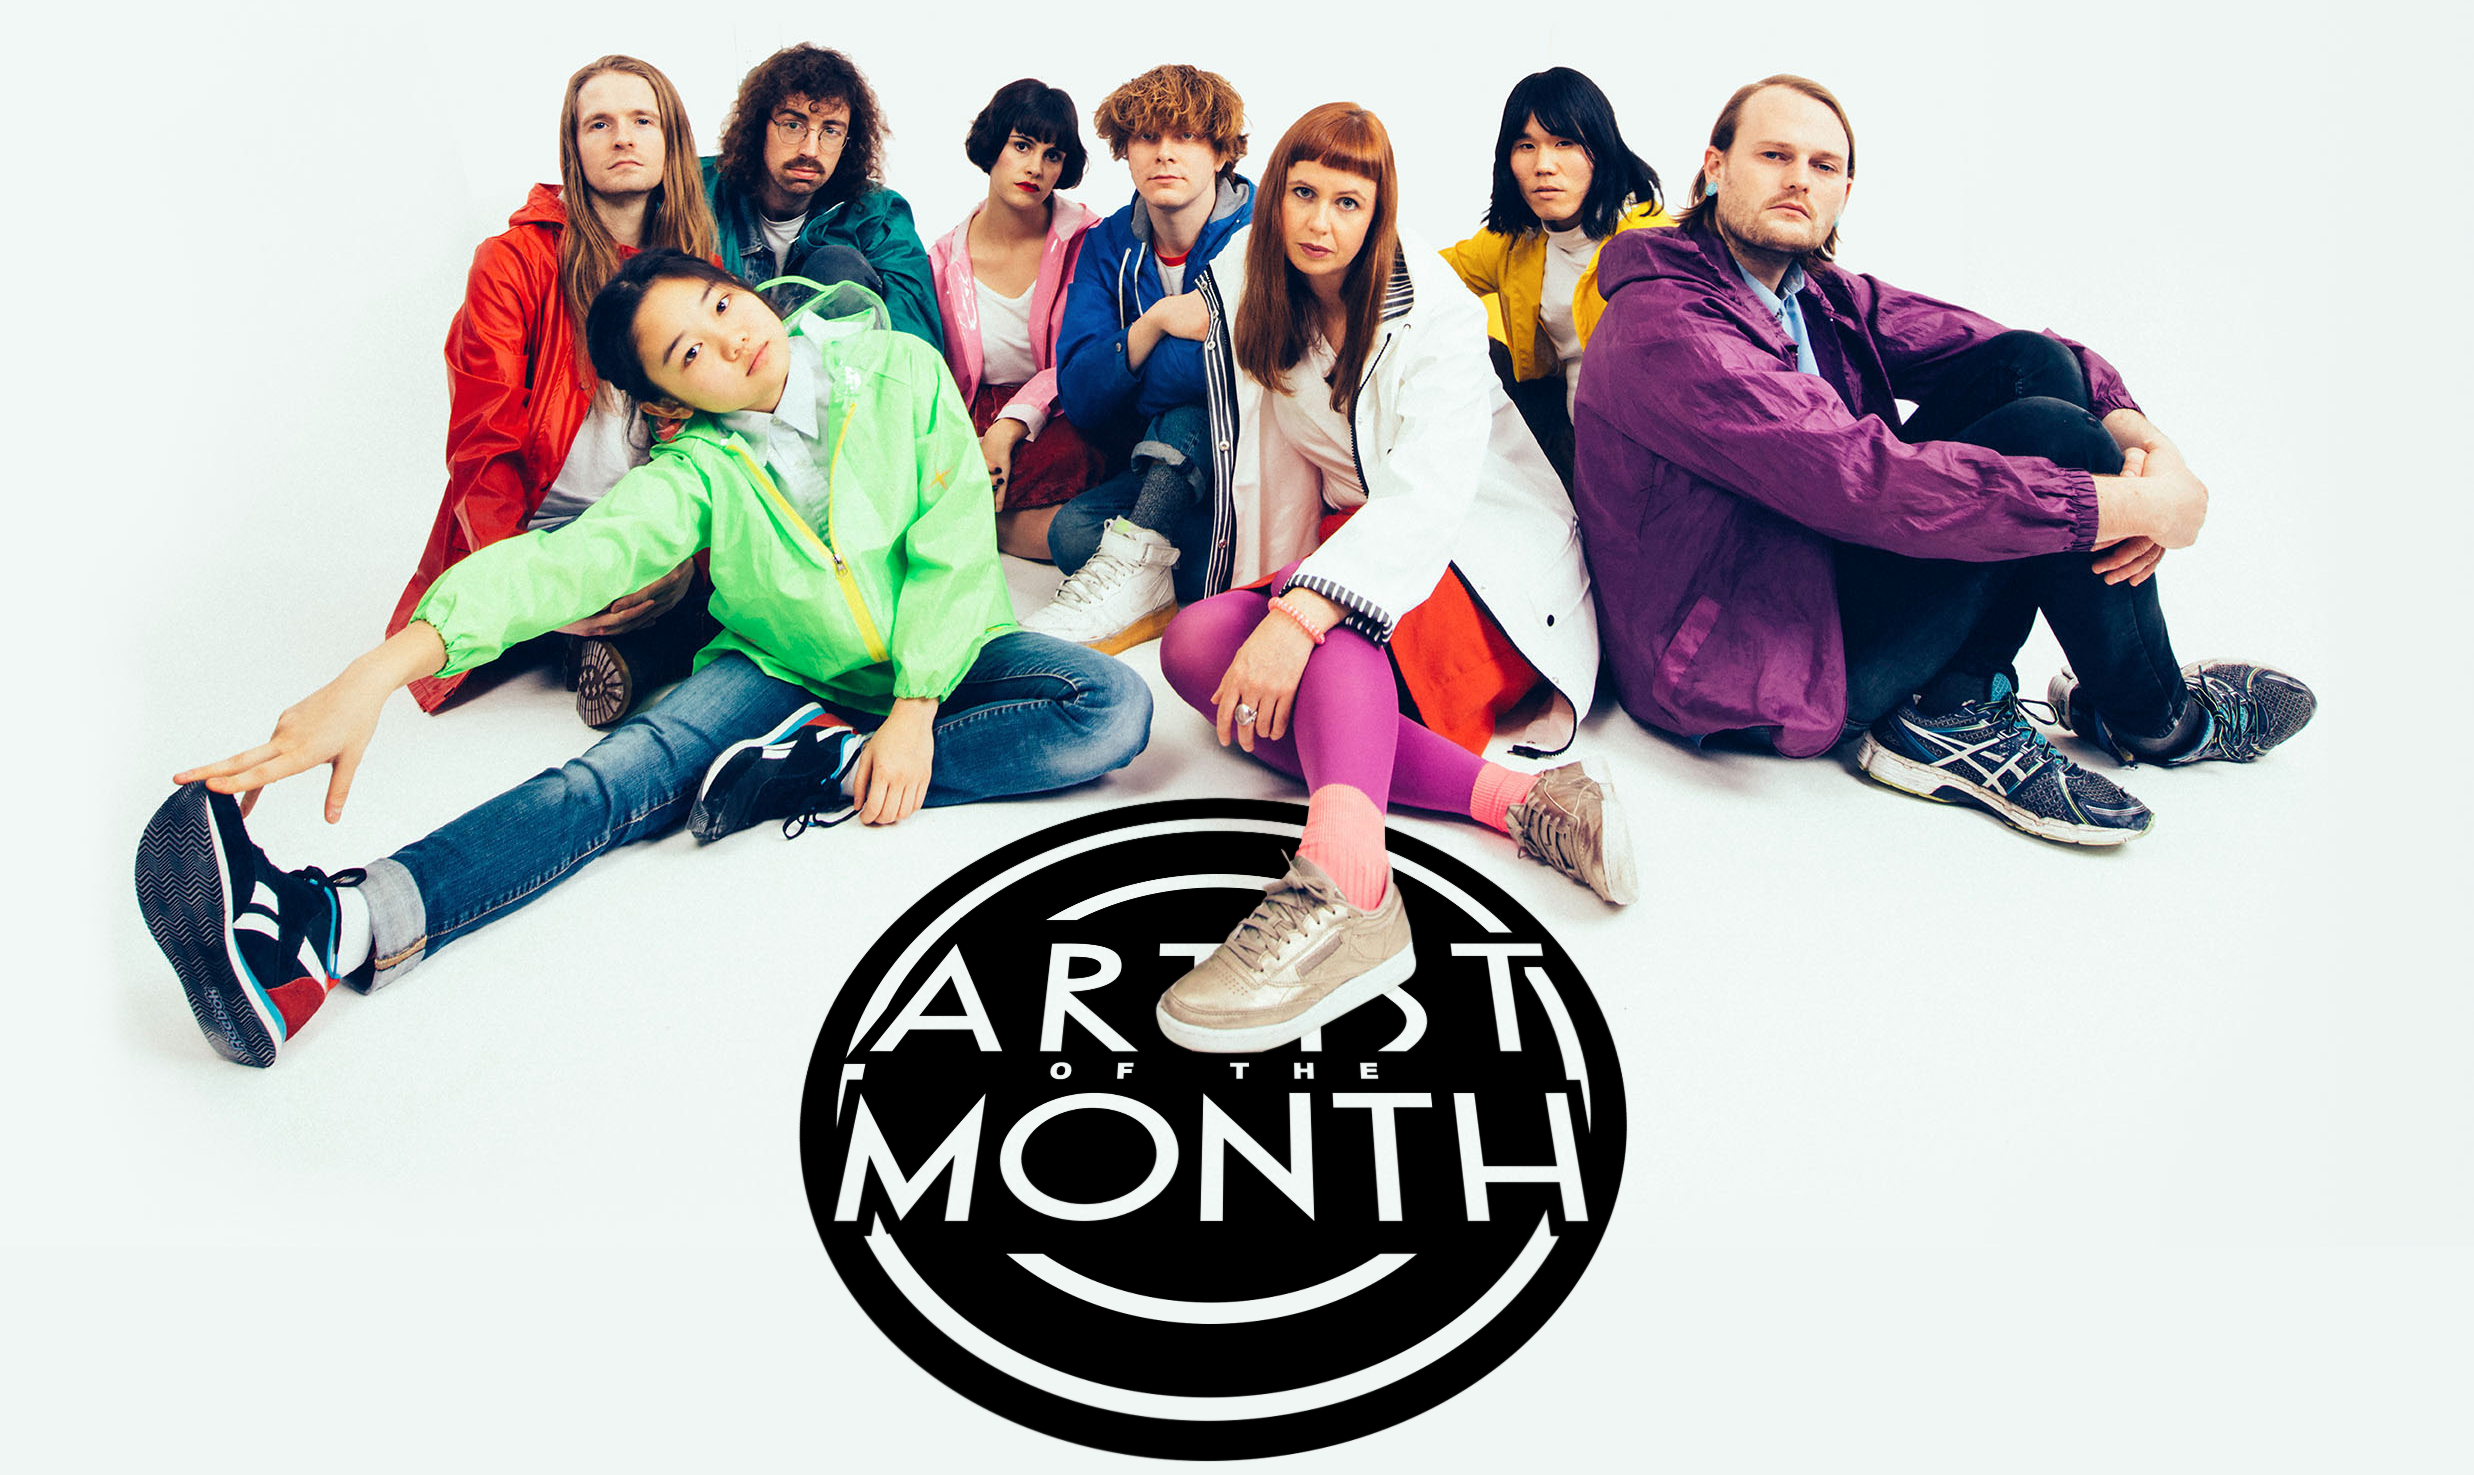 Artist of the Month Superorganism on Becoming a Band Before